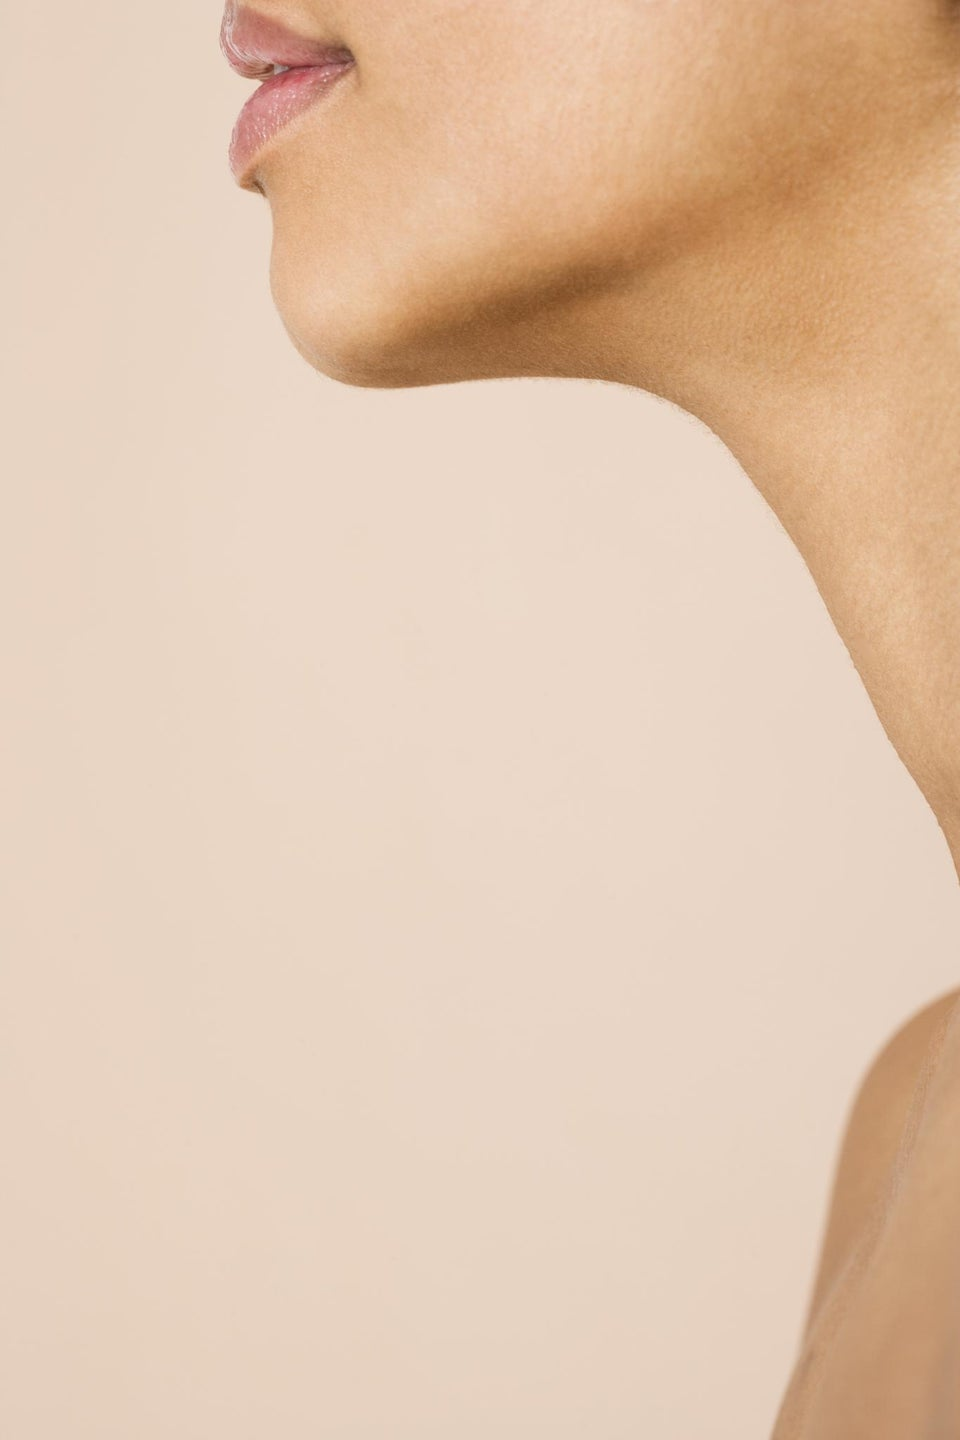 Neck Contouring is Proof That We've Gone Too Far